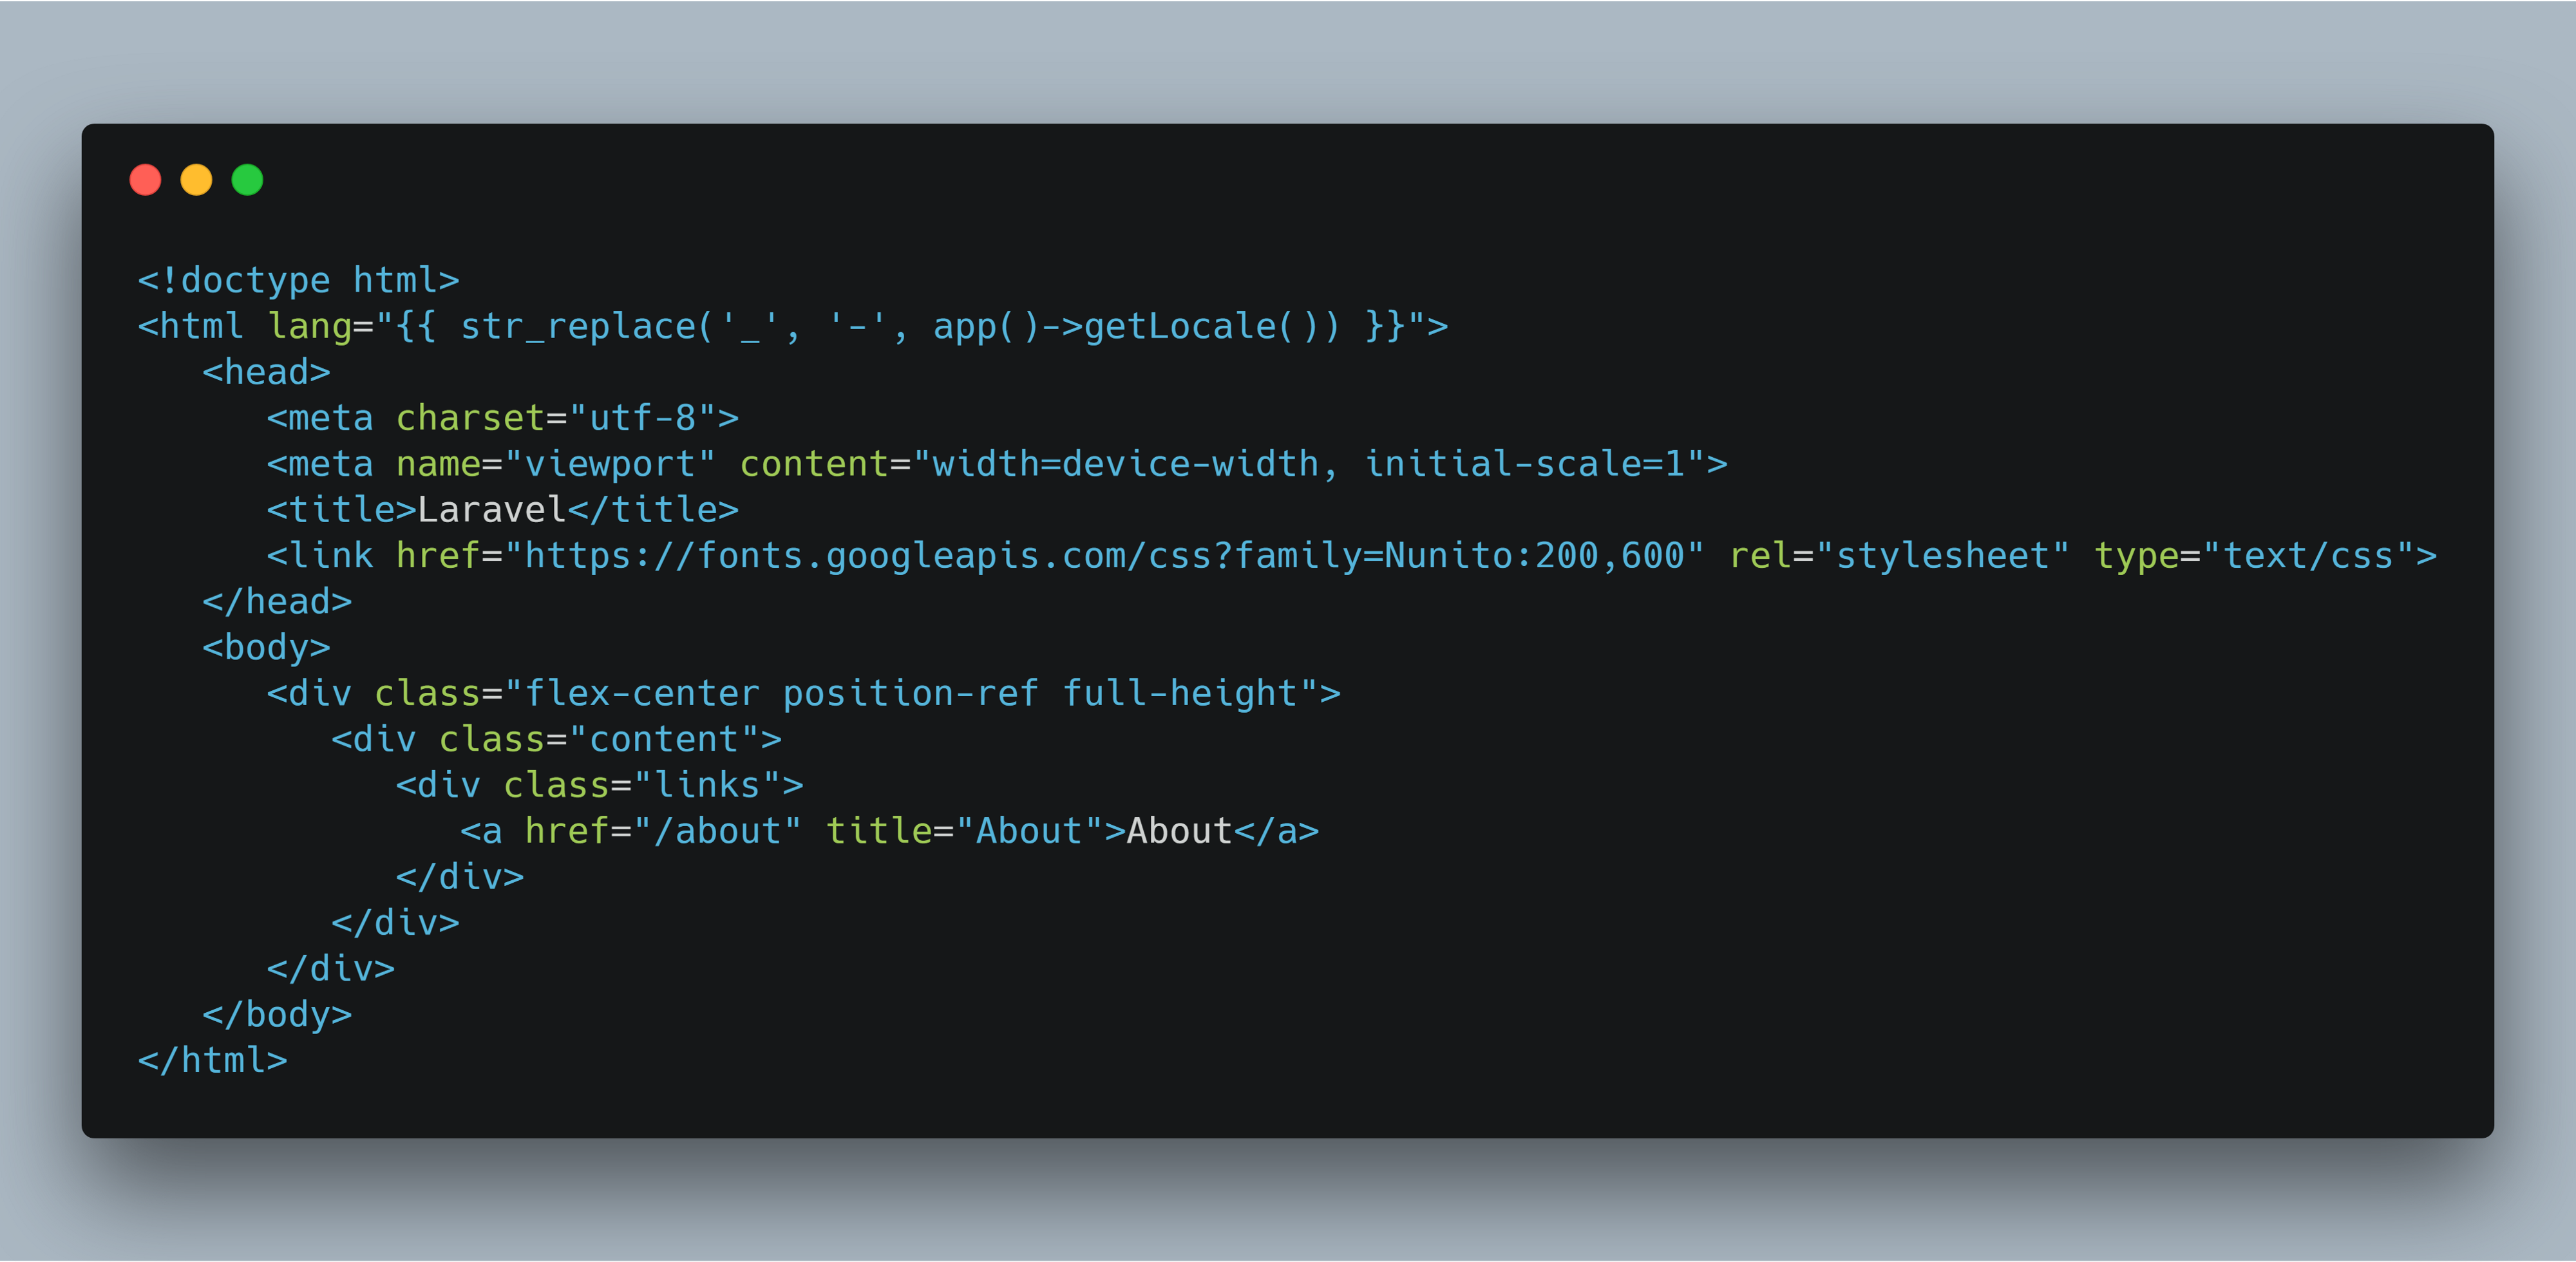 Laravel 5 7 — Blade Layout Files - Mohammad Javed - Medium